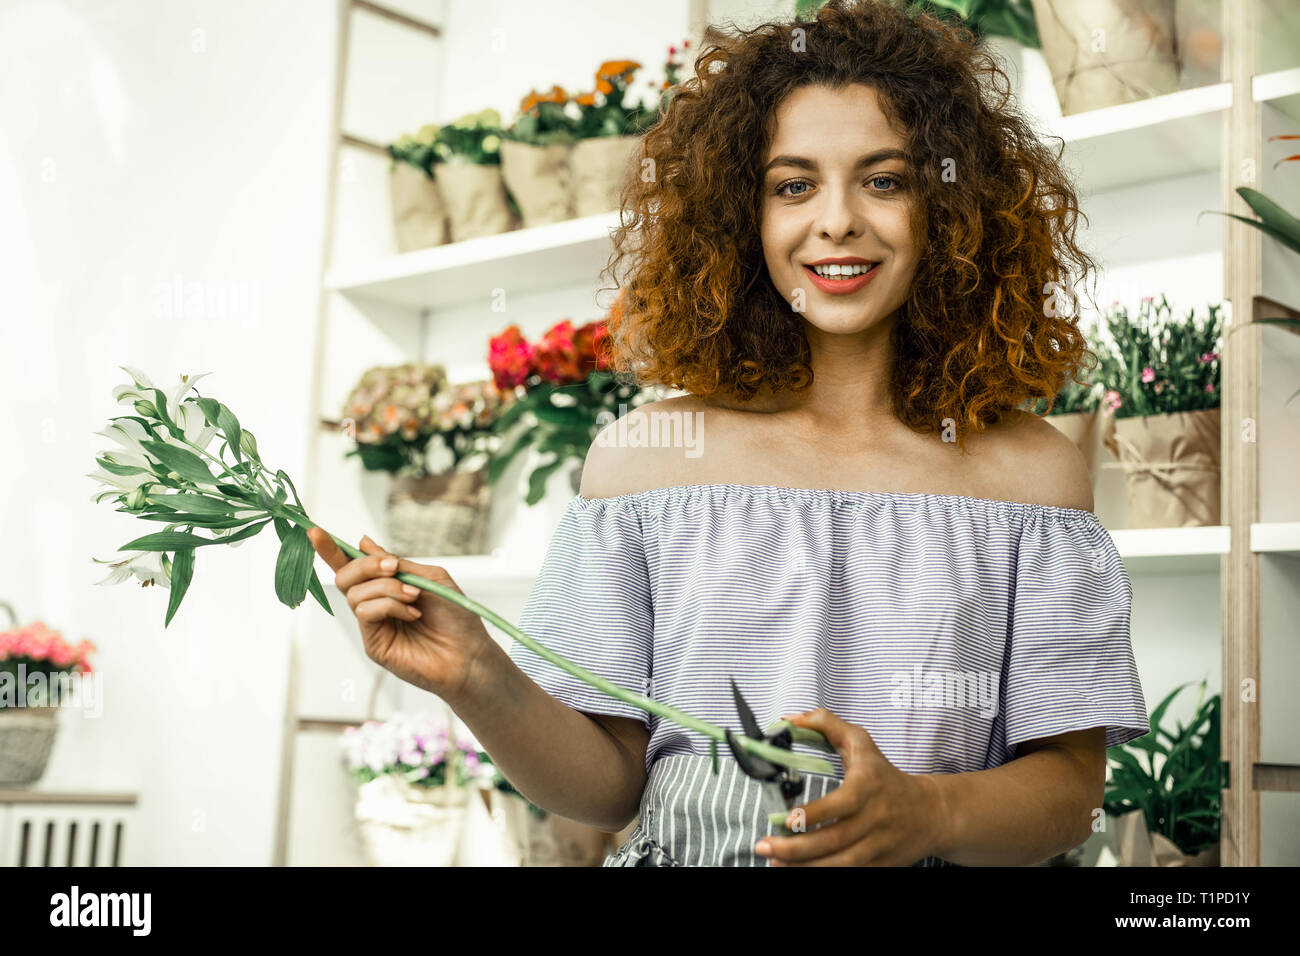 Young curly student enjoying her part-time job in flowershop - Stock Image